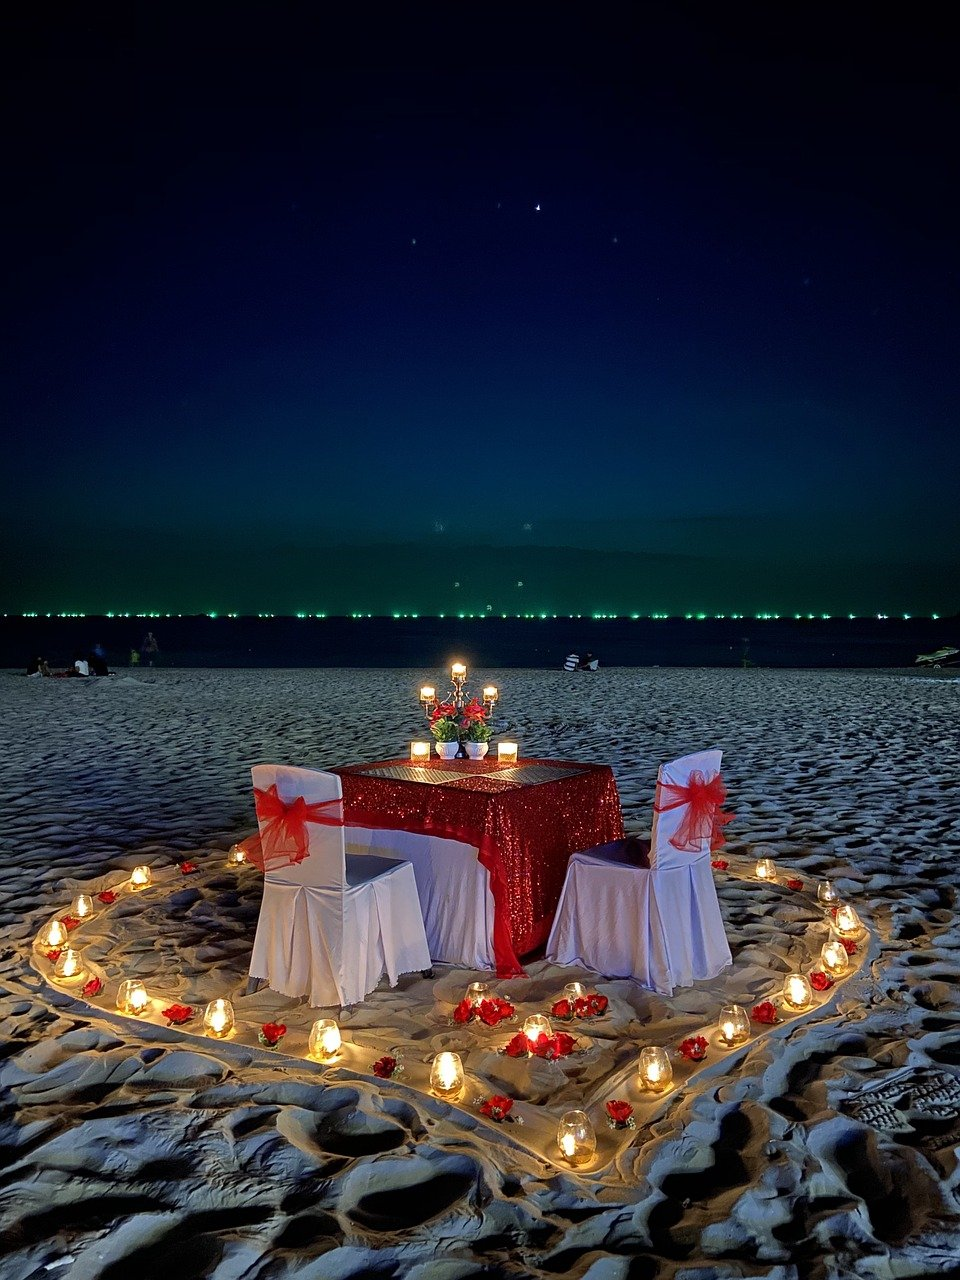 Nighttime beach wedding.